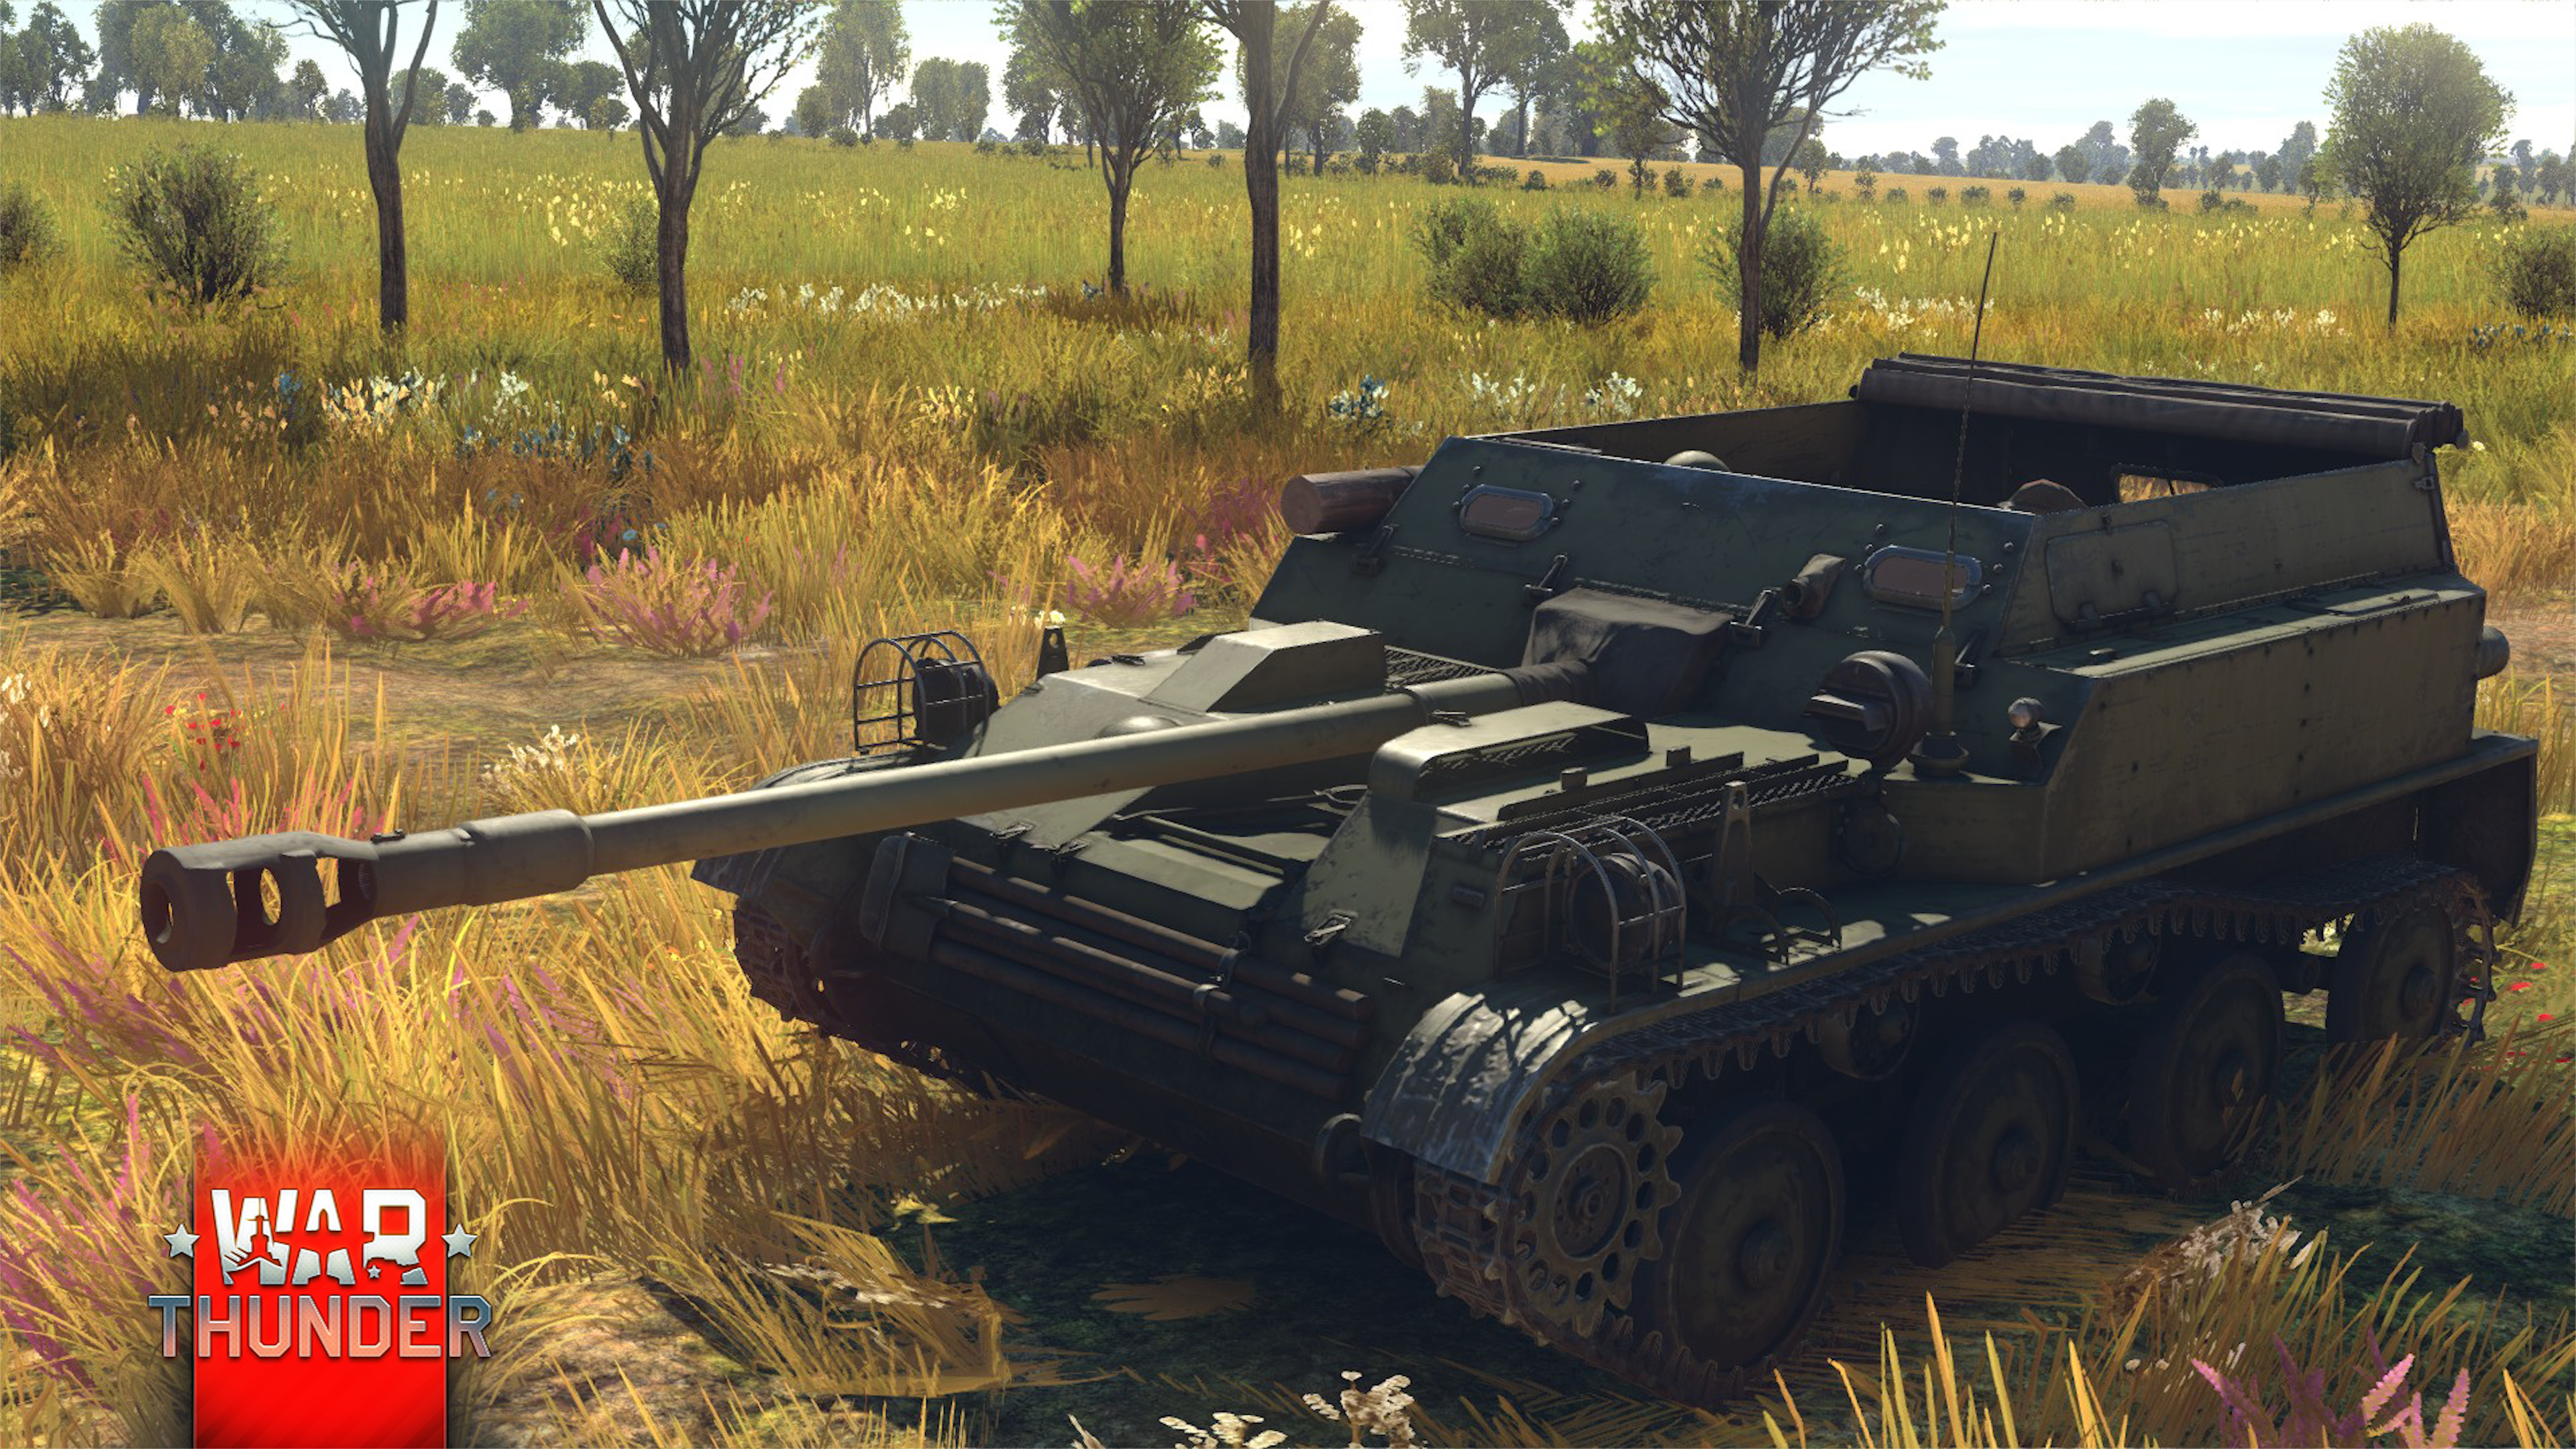 https://static.warthunder.ru/upload/image/!2016/May/aces-dev%202015-10-02%2013-51-22-211_18adeef53c84b8f15716a8185a8d4e4e.png